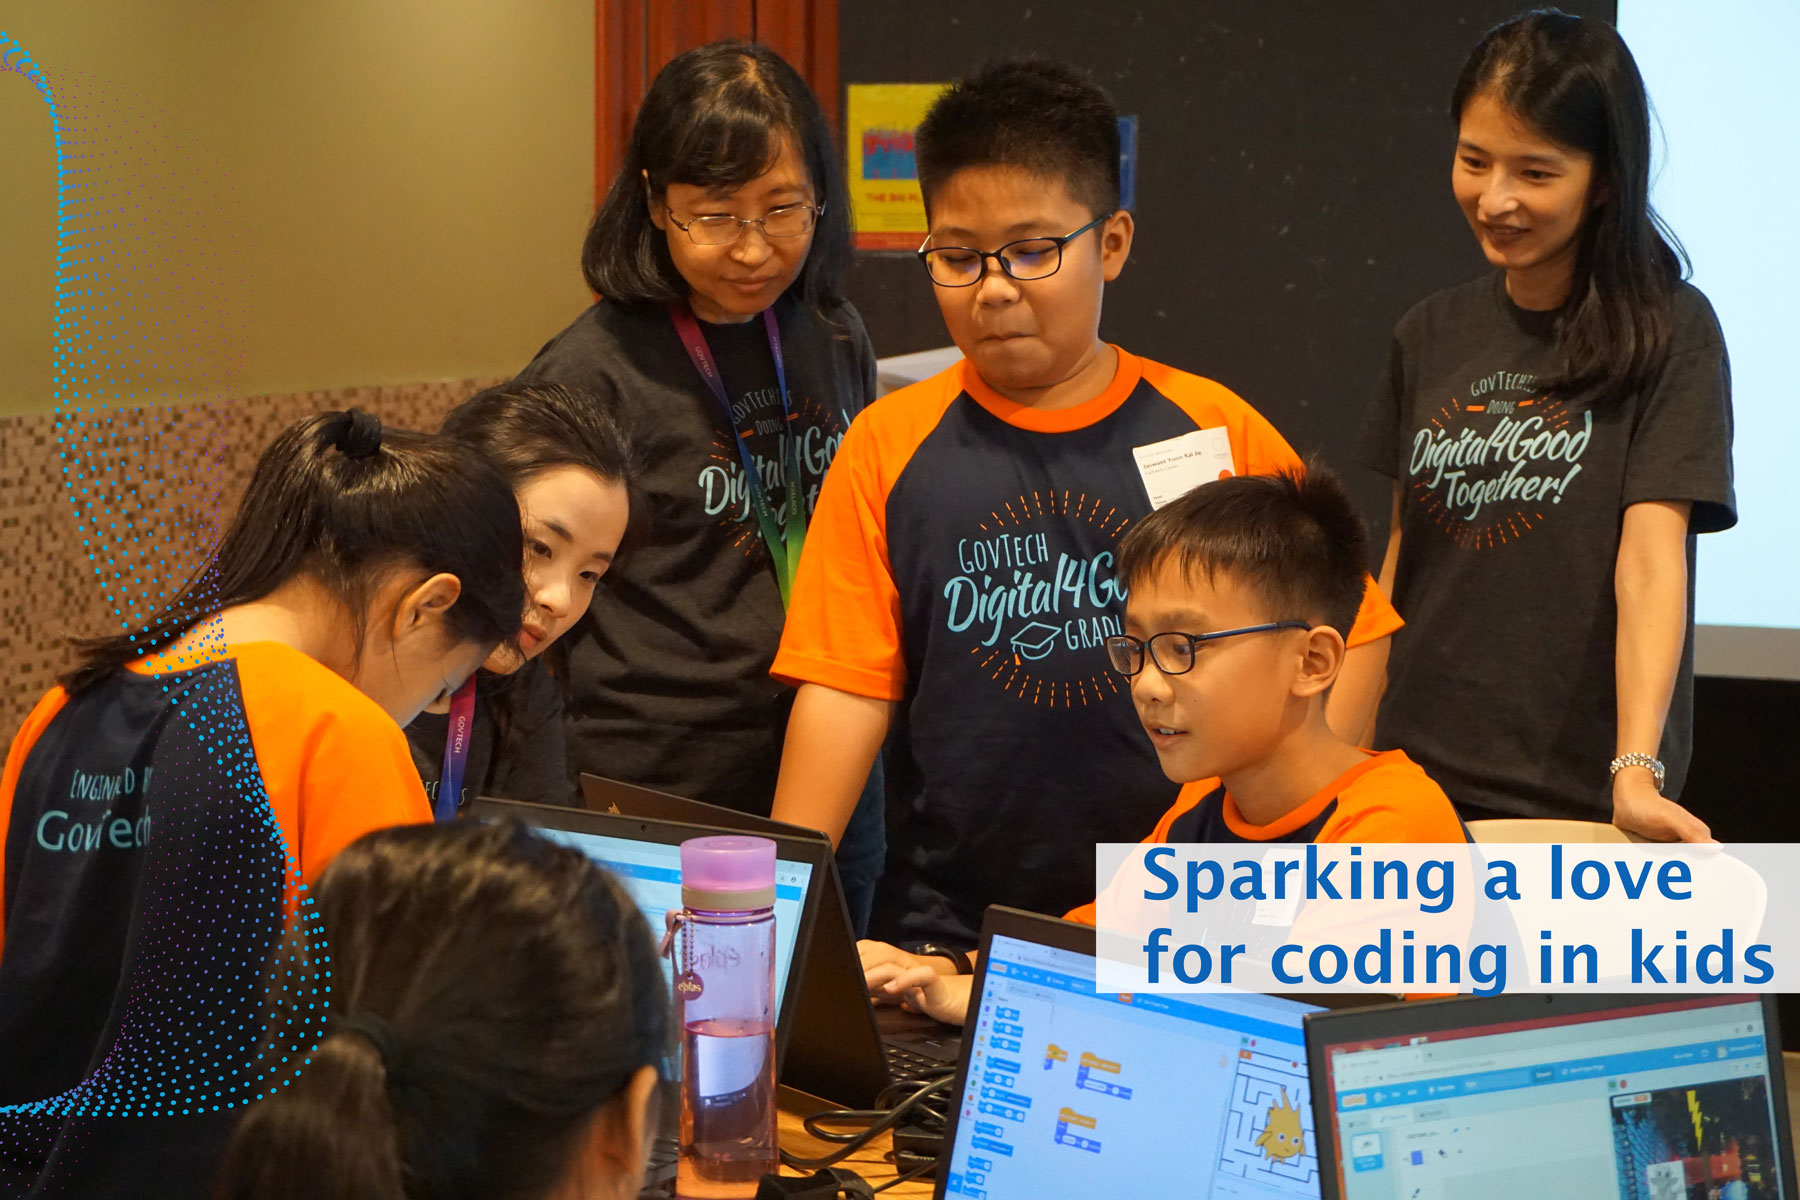 Teaching Scratch coding to kids by GovTech volunteers in a Smart Nation